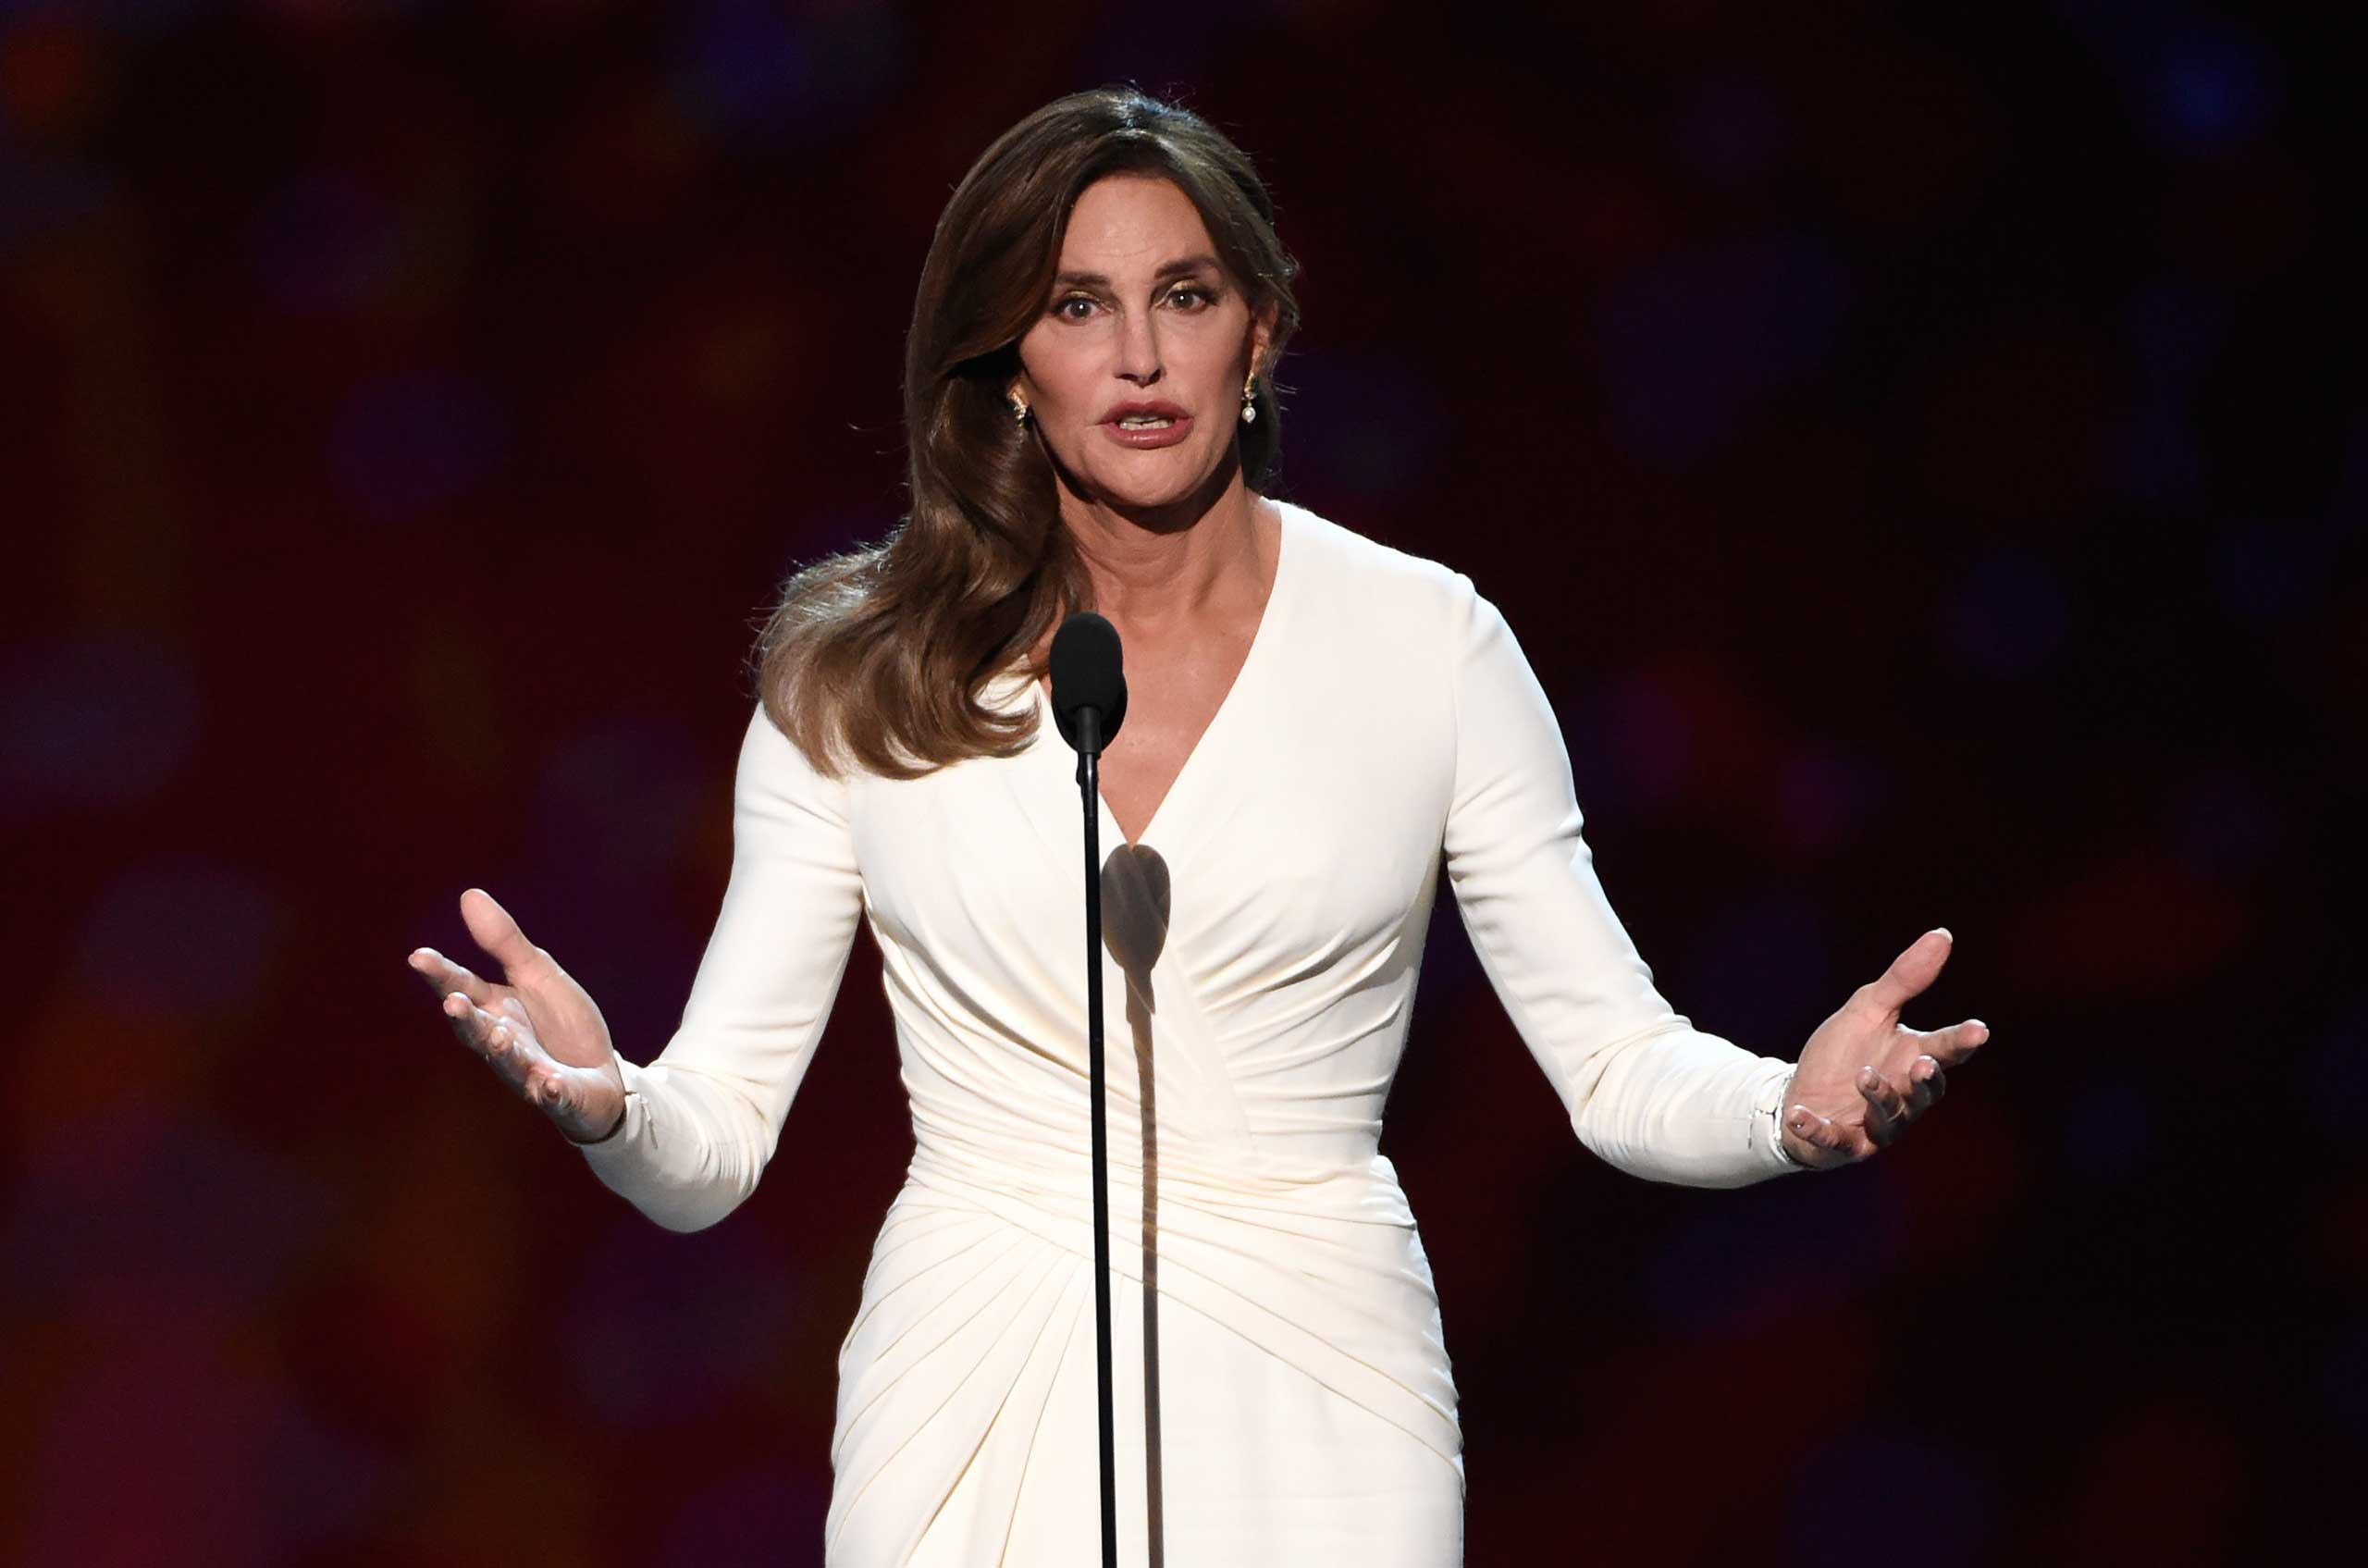 Caitlyn Jenner accepts the Arthur Ashe award for courage at the ESPY Awards at the Microsoft Theater in Los Angeles, July 15, 2015